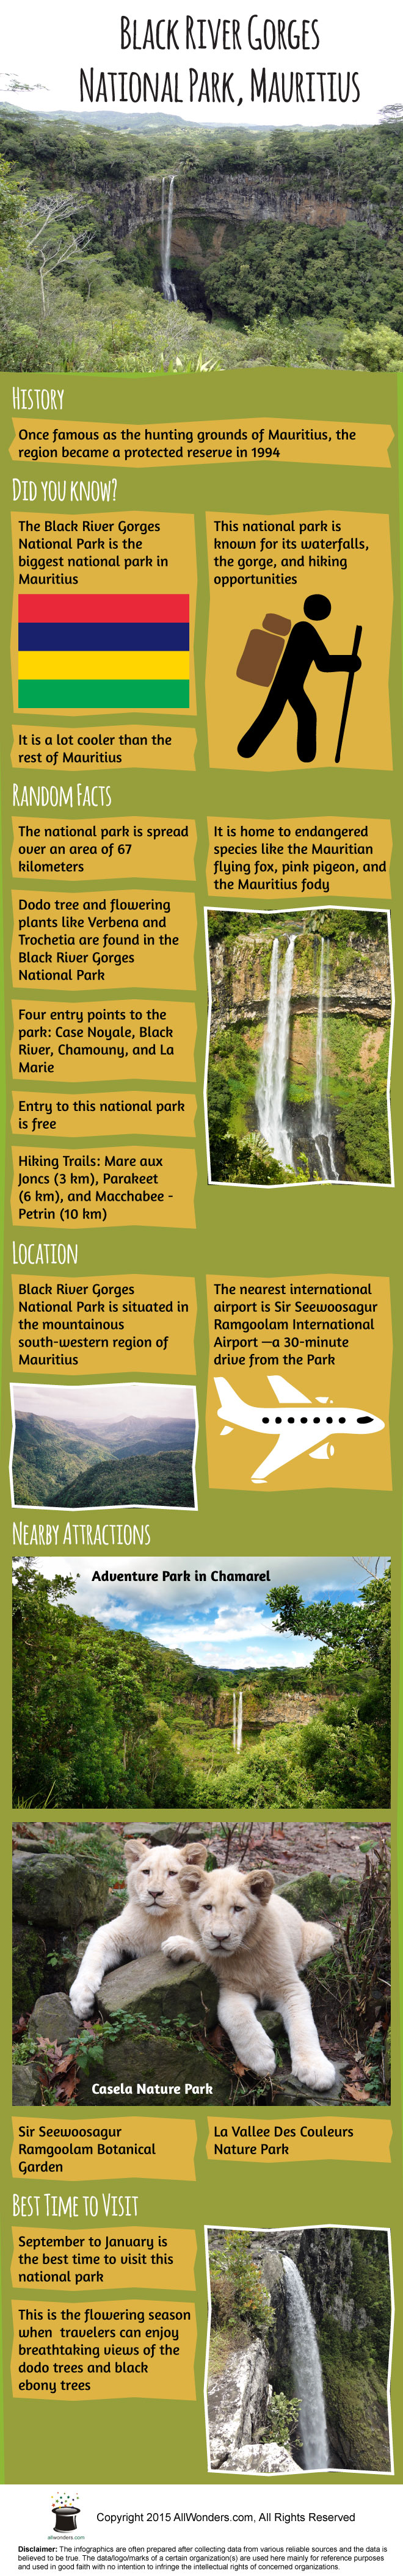 Black River Gorges National Park Infographic